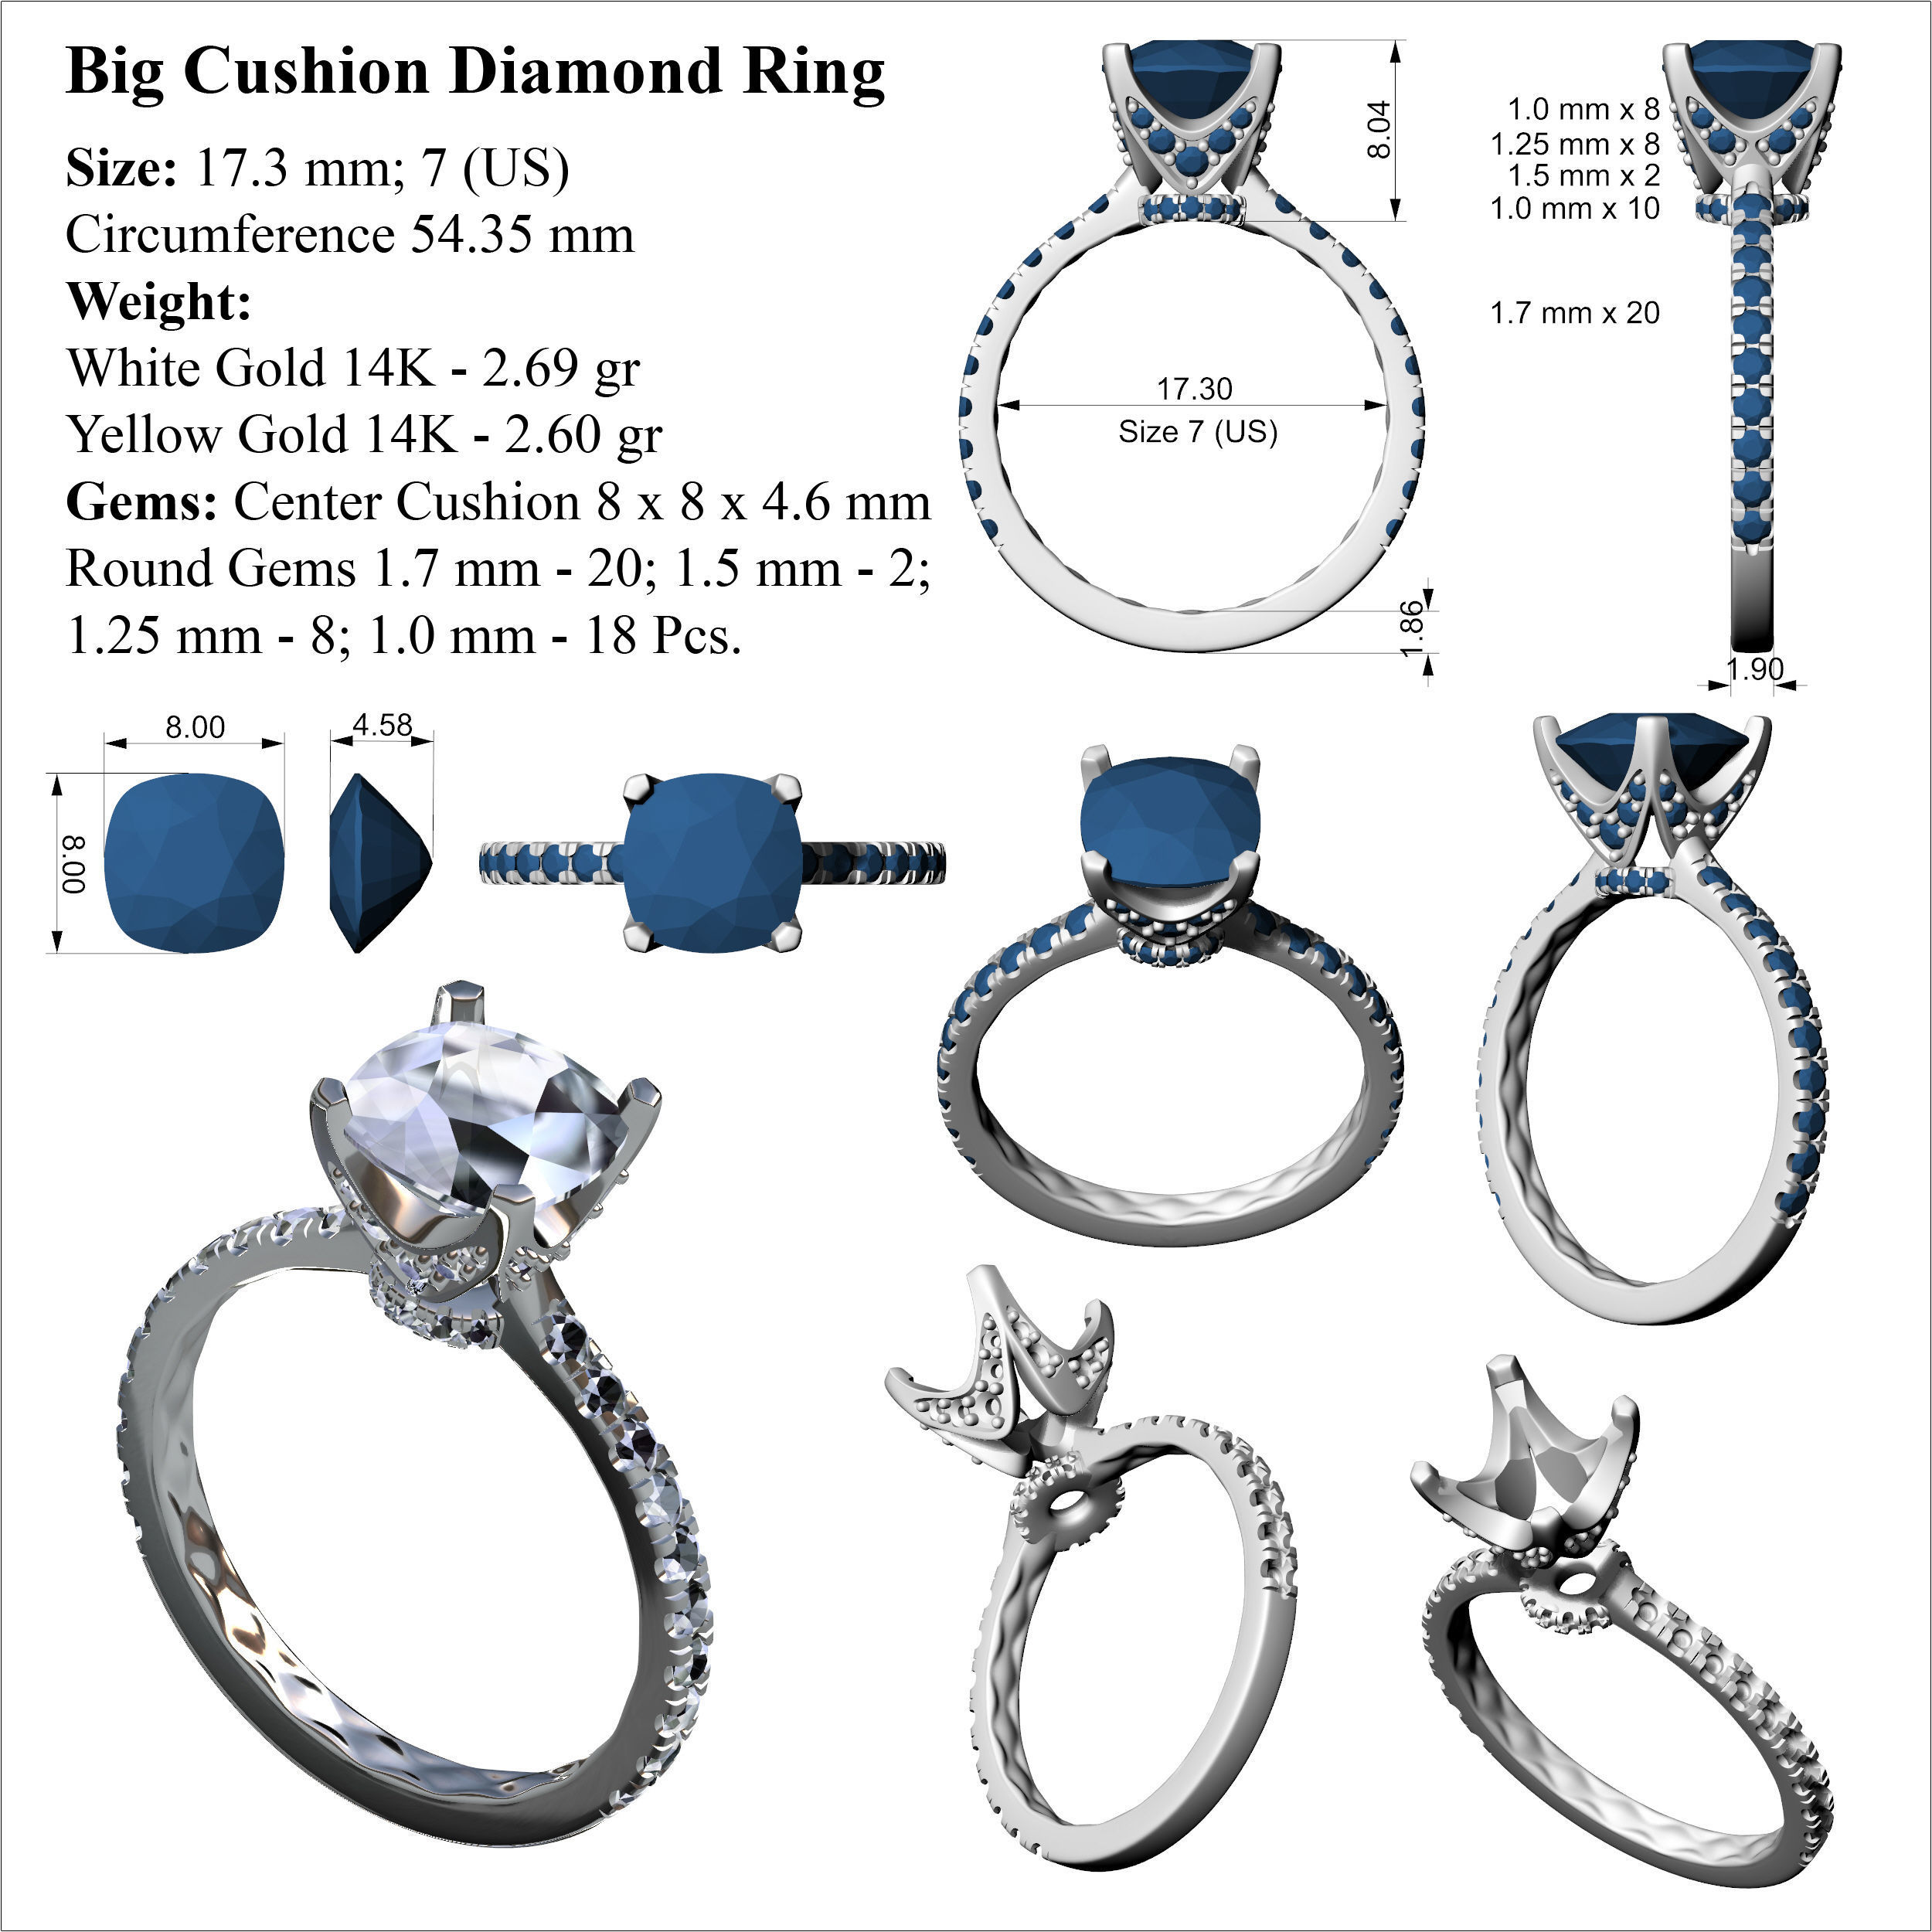 jewelry cgtrader model rings square ring diamond print pav stl models